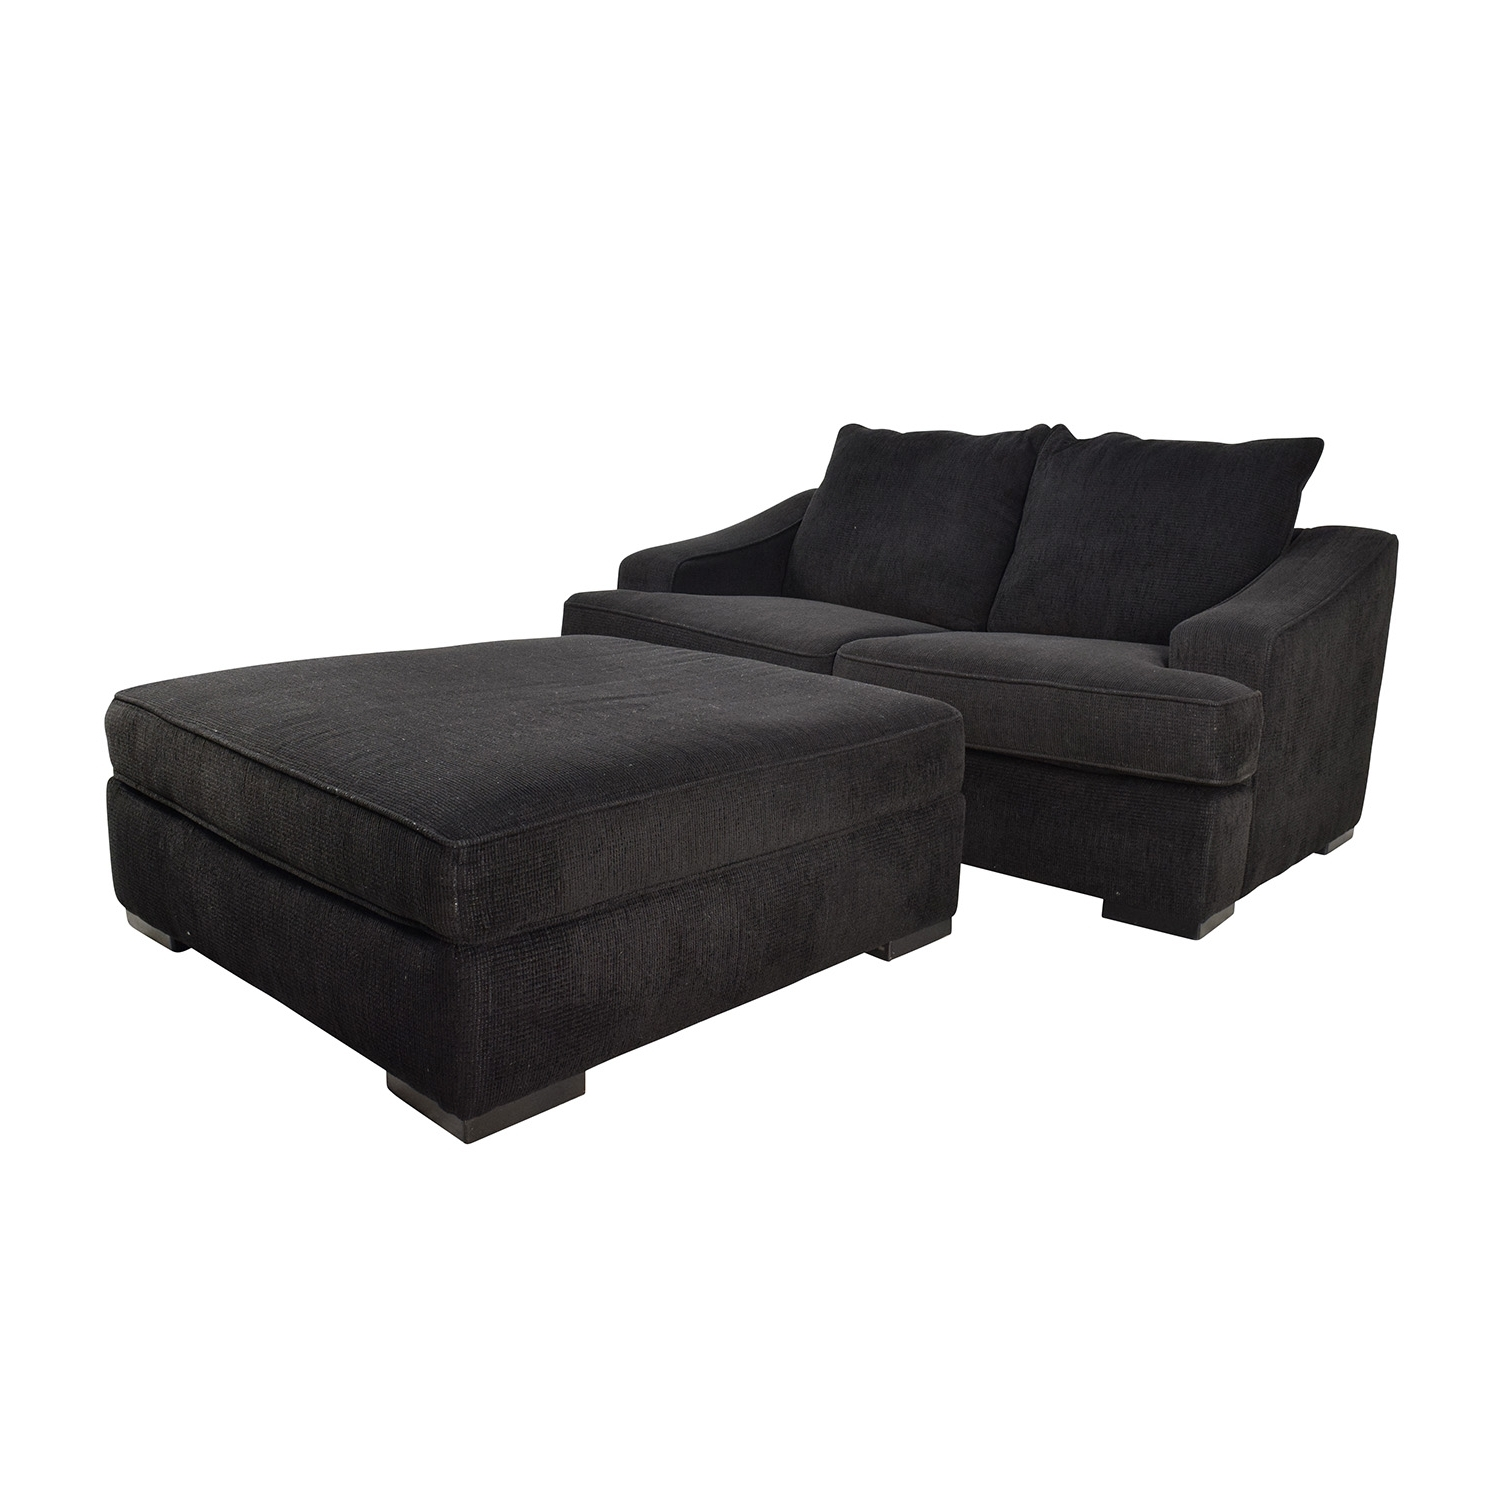 [%67% Off – Black Cloth Loveseat And Matching Oversized Ottoman / Sofas For Newest Loveseats With Ottoman|Loveseats With Ottoman With Latest 67% Off – Black Cloth Loveseat And Matching Oversized Ottoman / Sofas|Most Current Loveseats With Ottoman For 67% Off – Black Cloth Loveseat And Matching Oversized Ottoman / Sofas|Most Current 67% Off – Black Cloth Loveseat And Matching Oversized Ottoman / Sofas Throughout Loveseats With Ottoman%] (View 1 of 15)